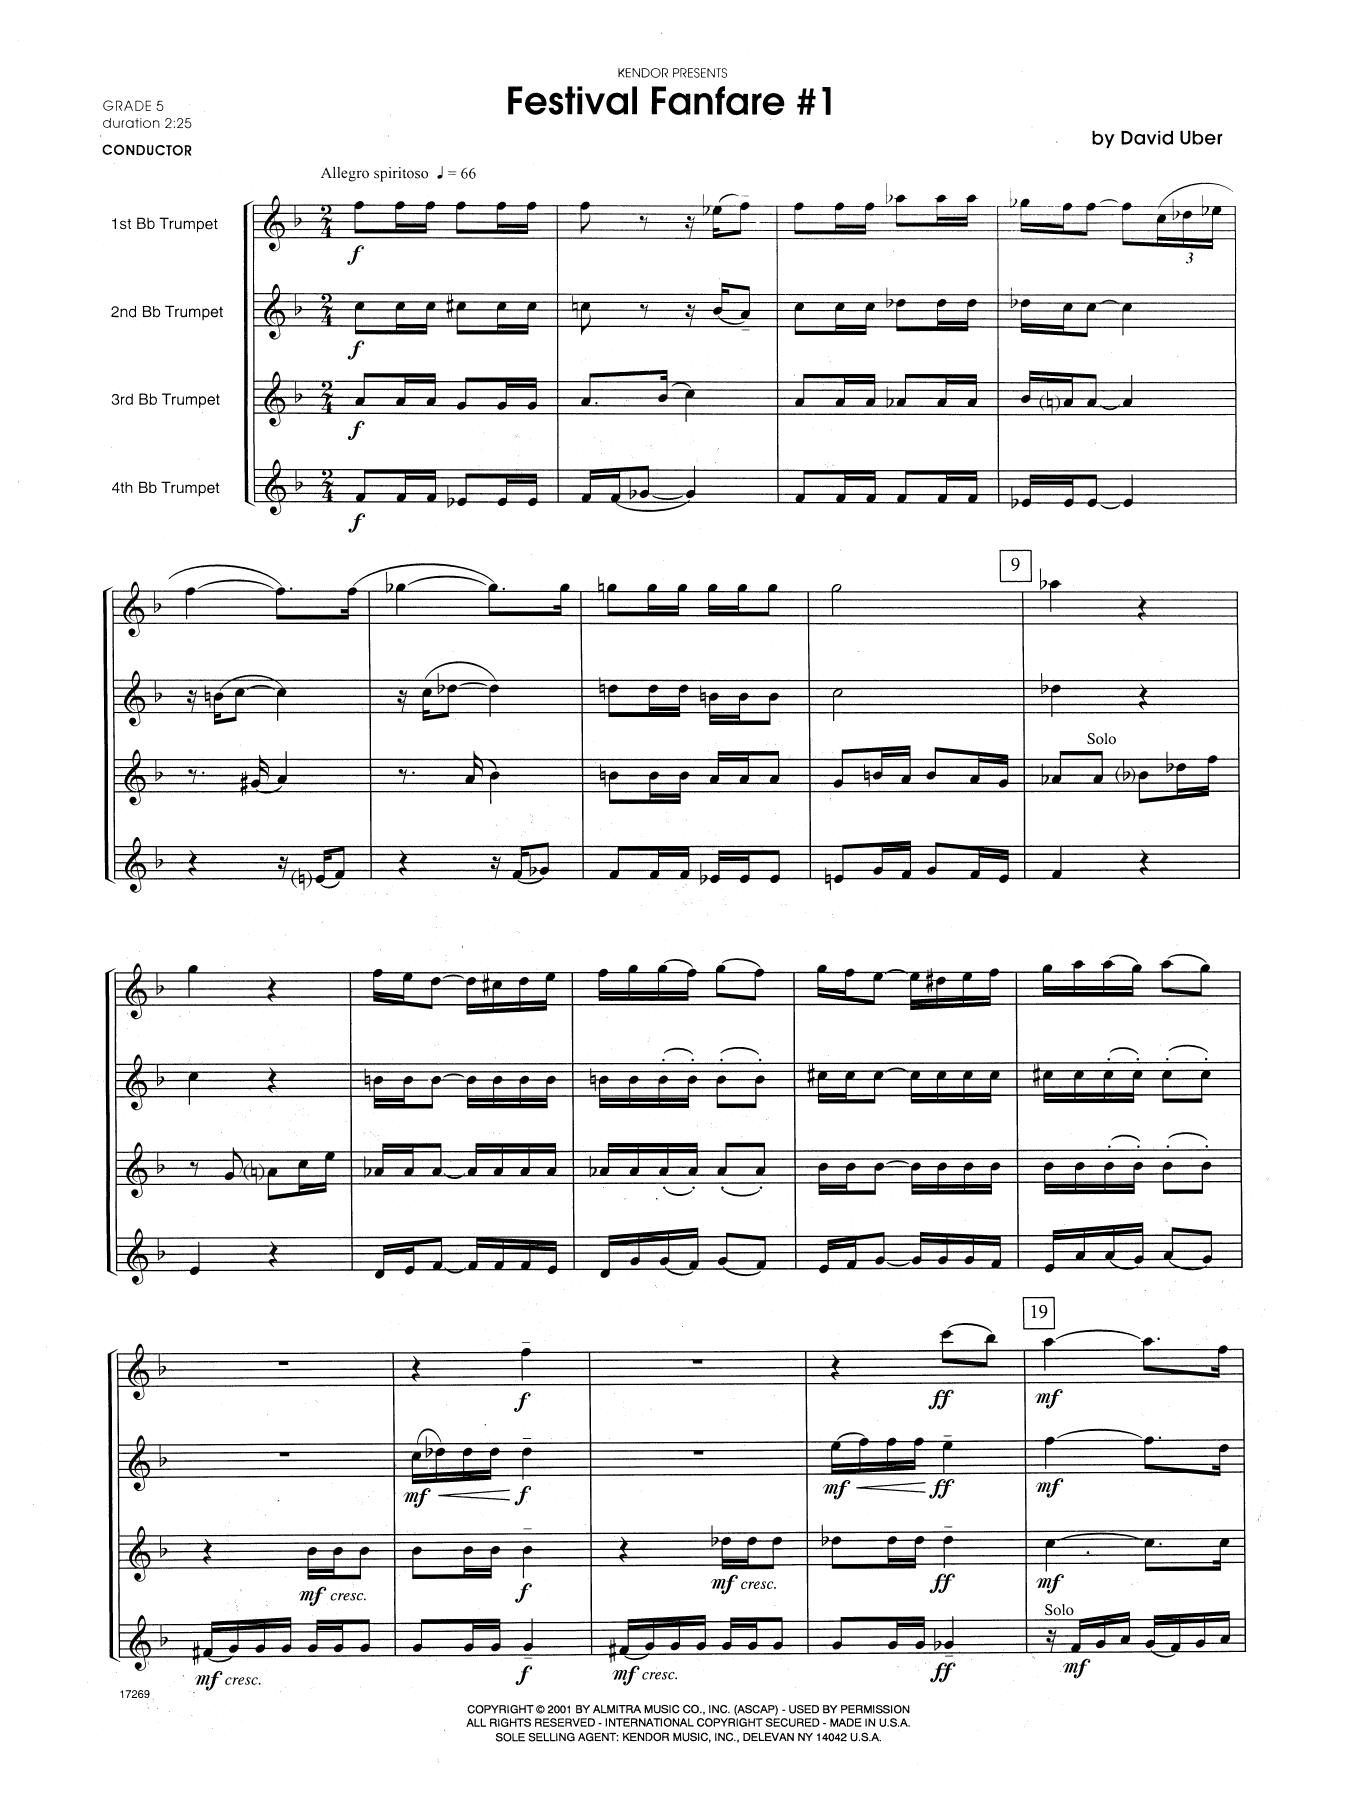 Festival Fanfare #1 (COMPLETE) sheet music for trumpet quartet by David Uber. Score Image Preview.